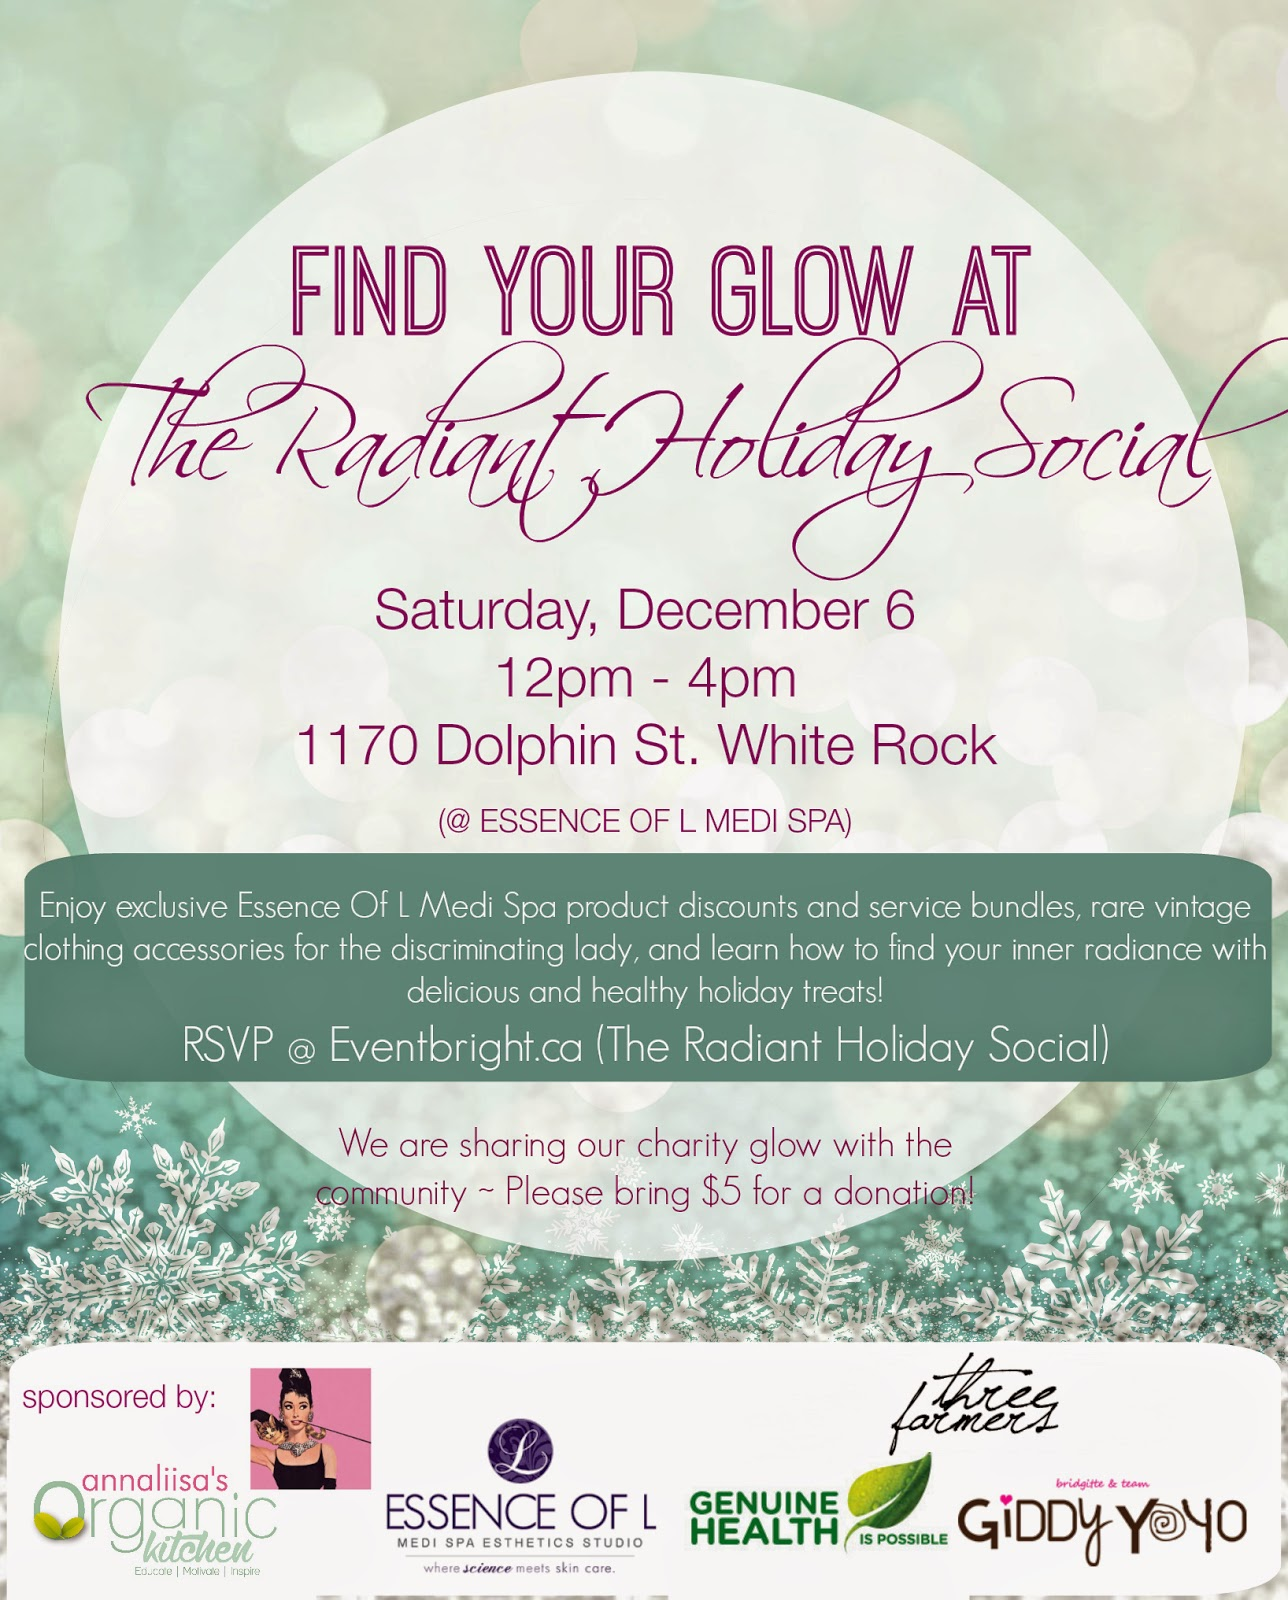 Event news: The Radiant Holiday Social in White Rock, South Surrey